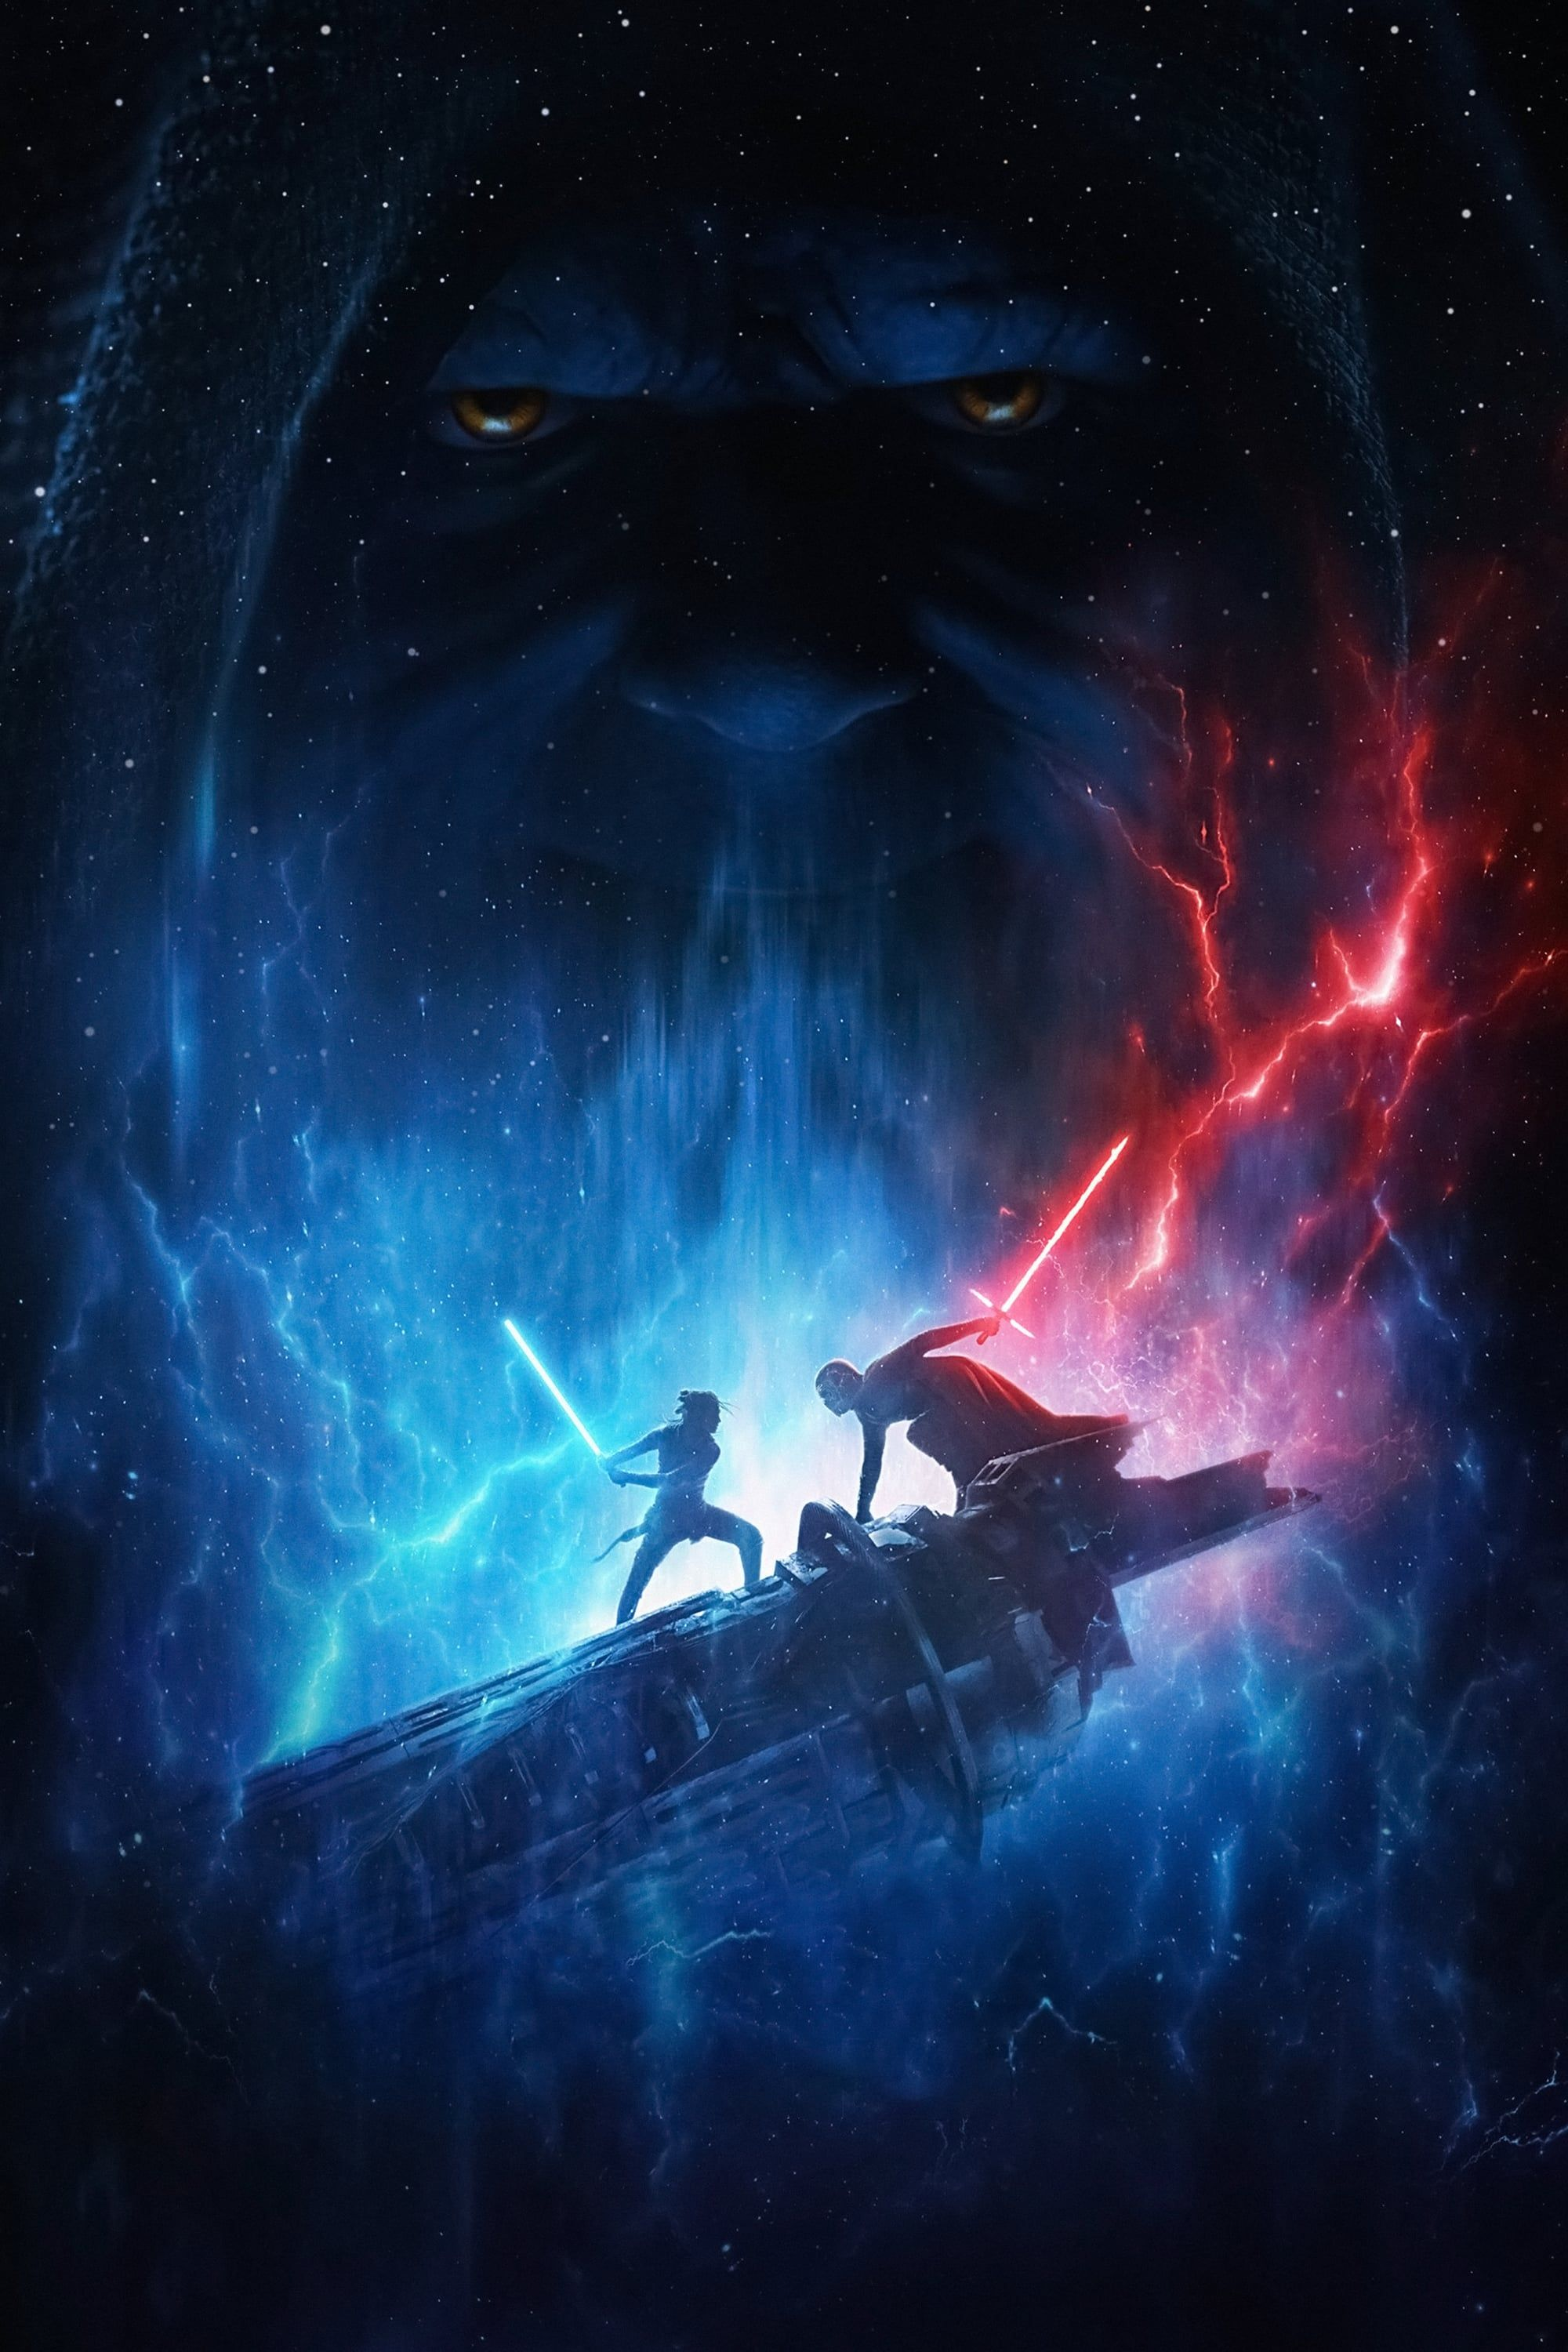 Free Download Star Wars The Rise Of Skywalker 2019 Dvdrip full movie English Subti Fondos De Star Wars Fondos De Pantalla En Movimiento Star Wars Fan Art